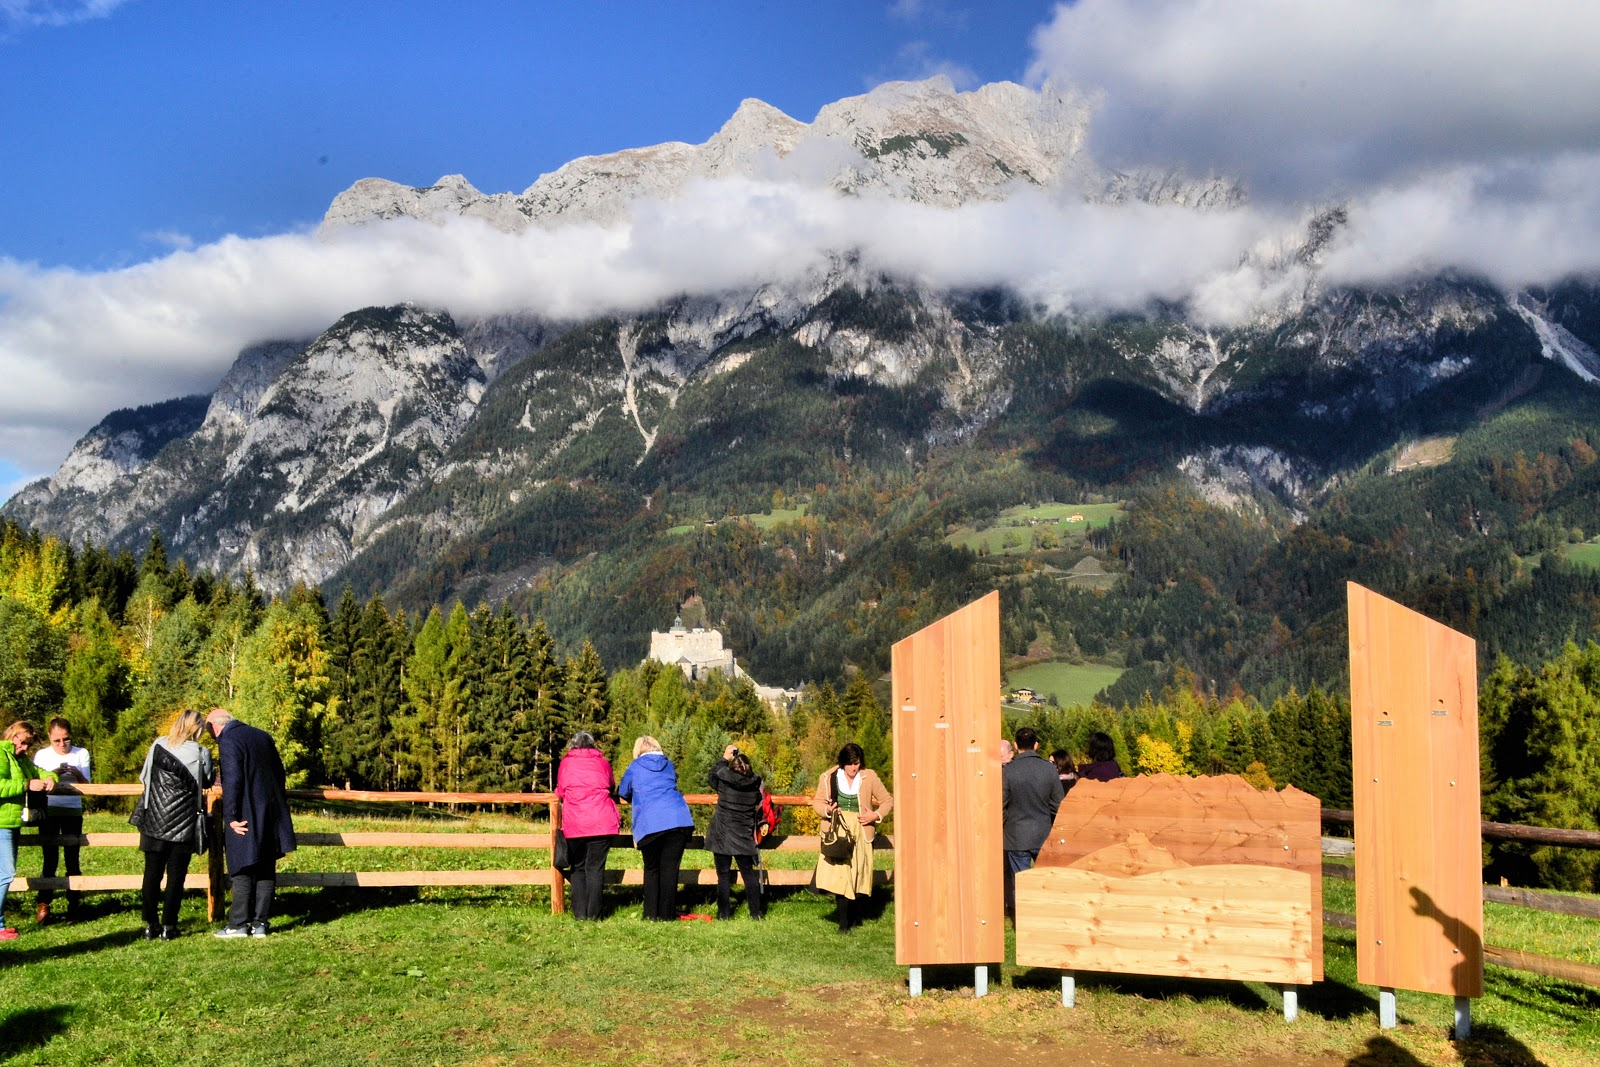 The Gschwandtanger Meadow is the last stop on the Sound of Music Trail in Werfen, Austria. The signage at the right is actually a map of the surrounding peaks and flanking each side are cleverly designed panels with little windows allowing you to take a peek of a peak in the background. Each peak hole identifies the mountain beyond.